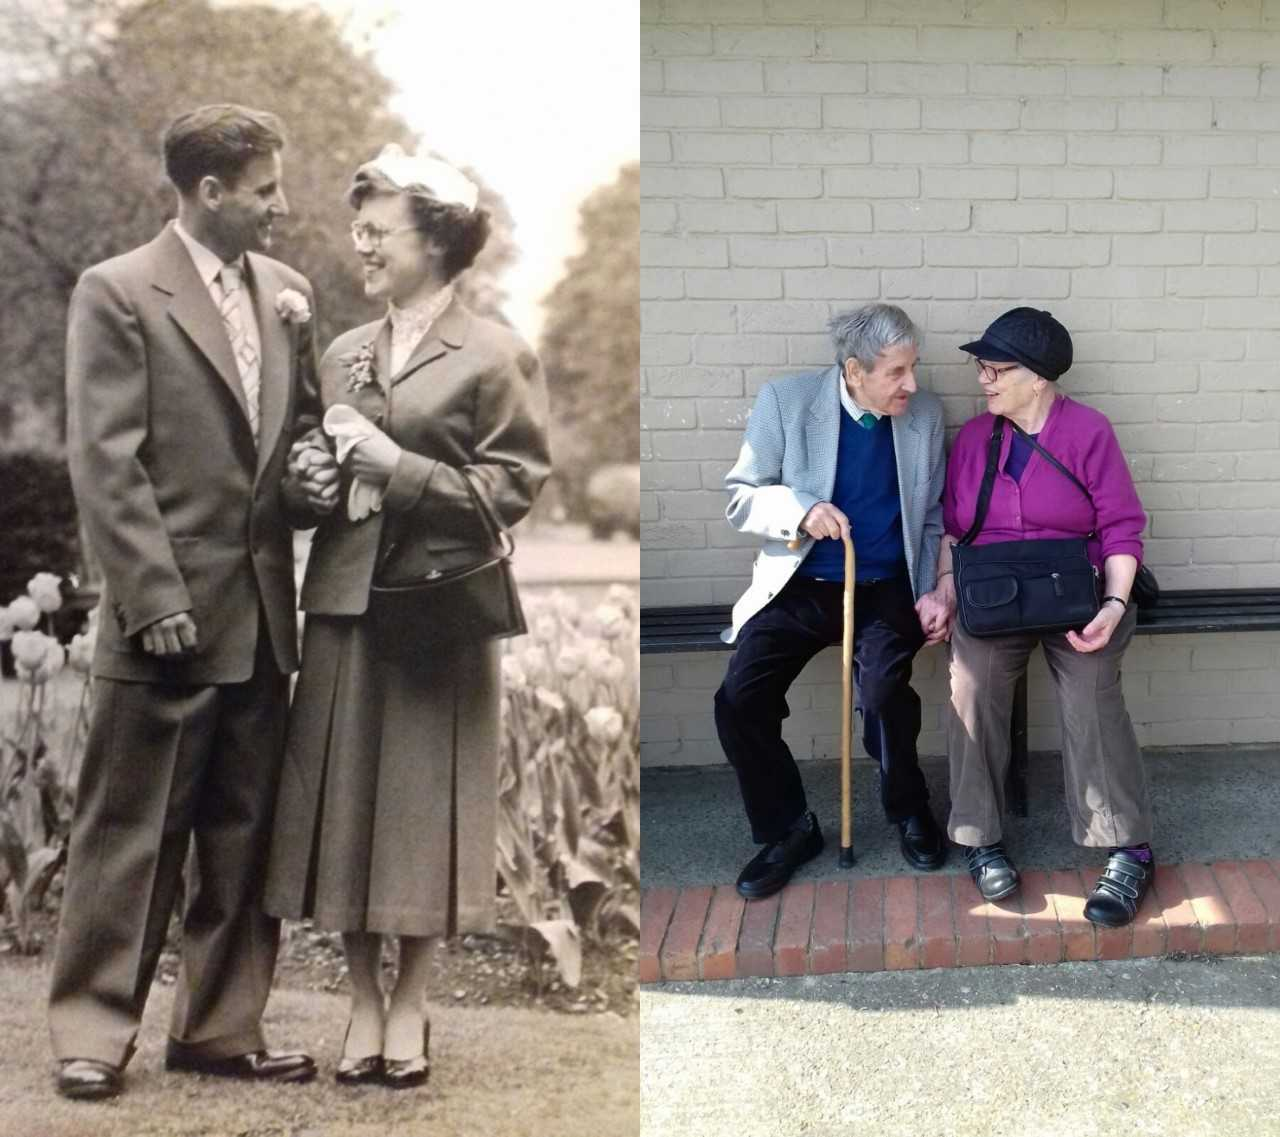 Then and now - Charlie and Audrey rekindle their love